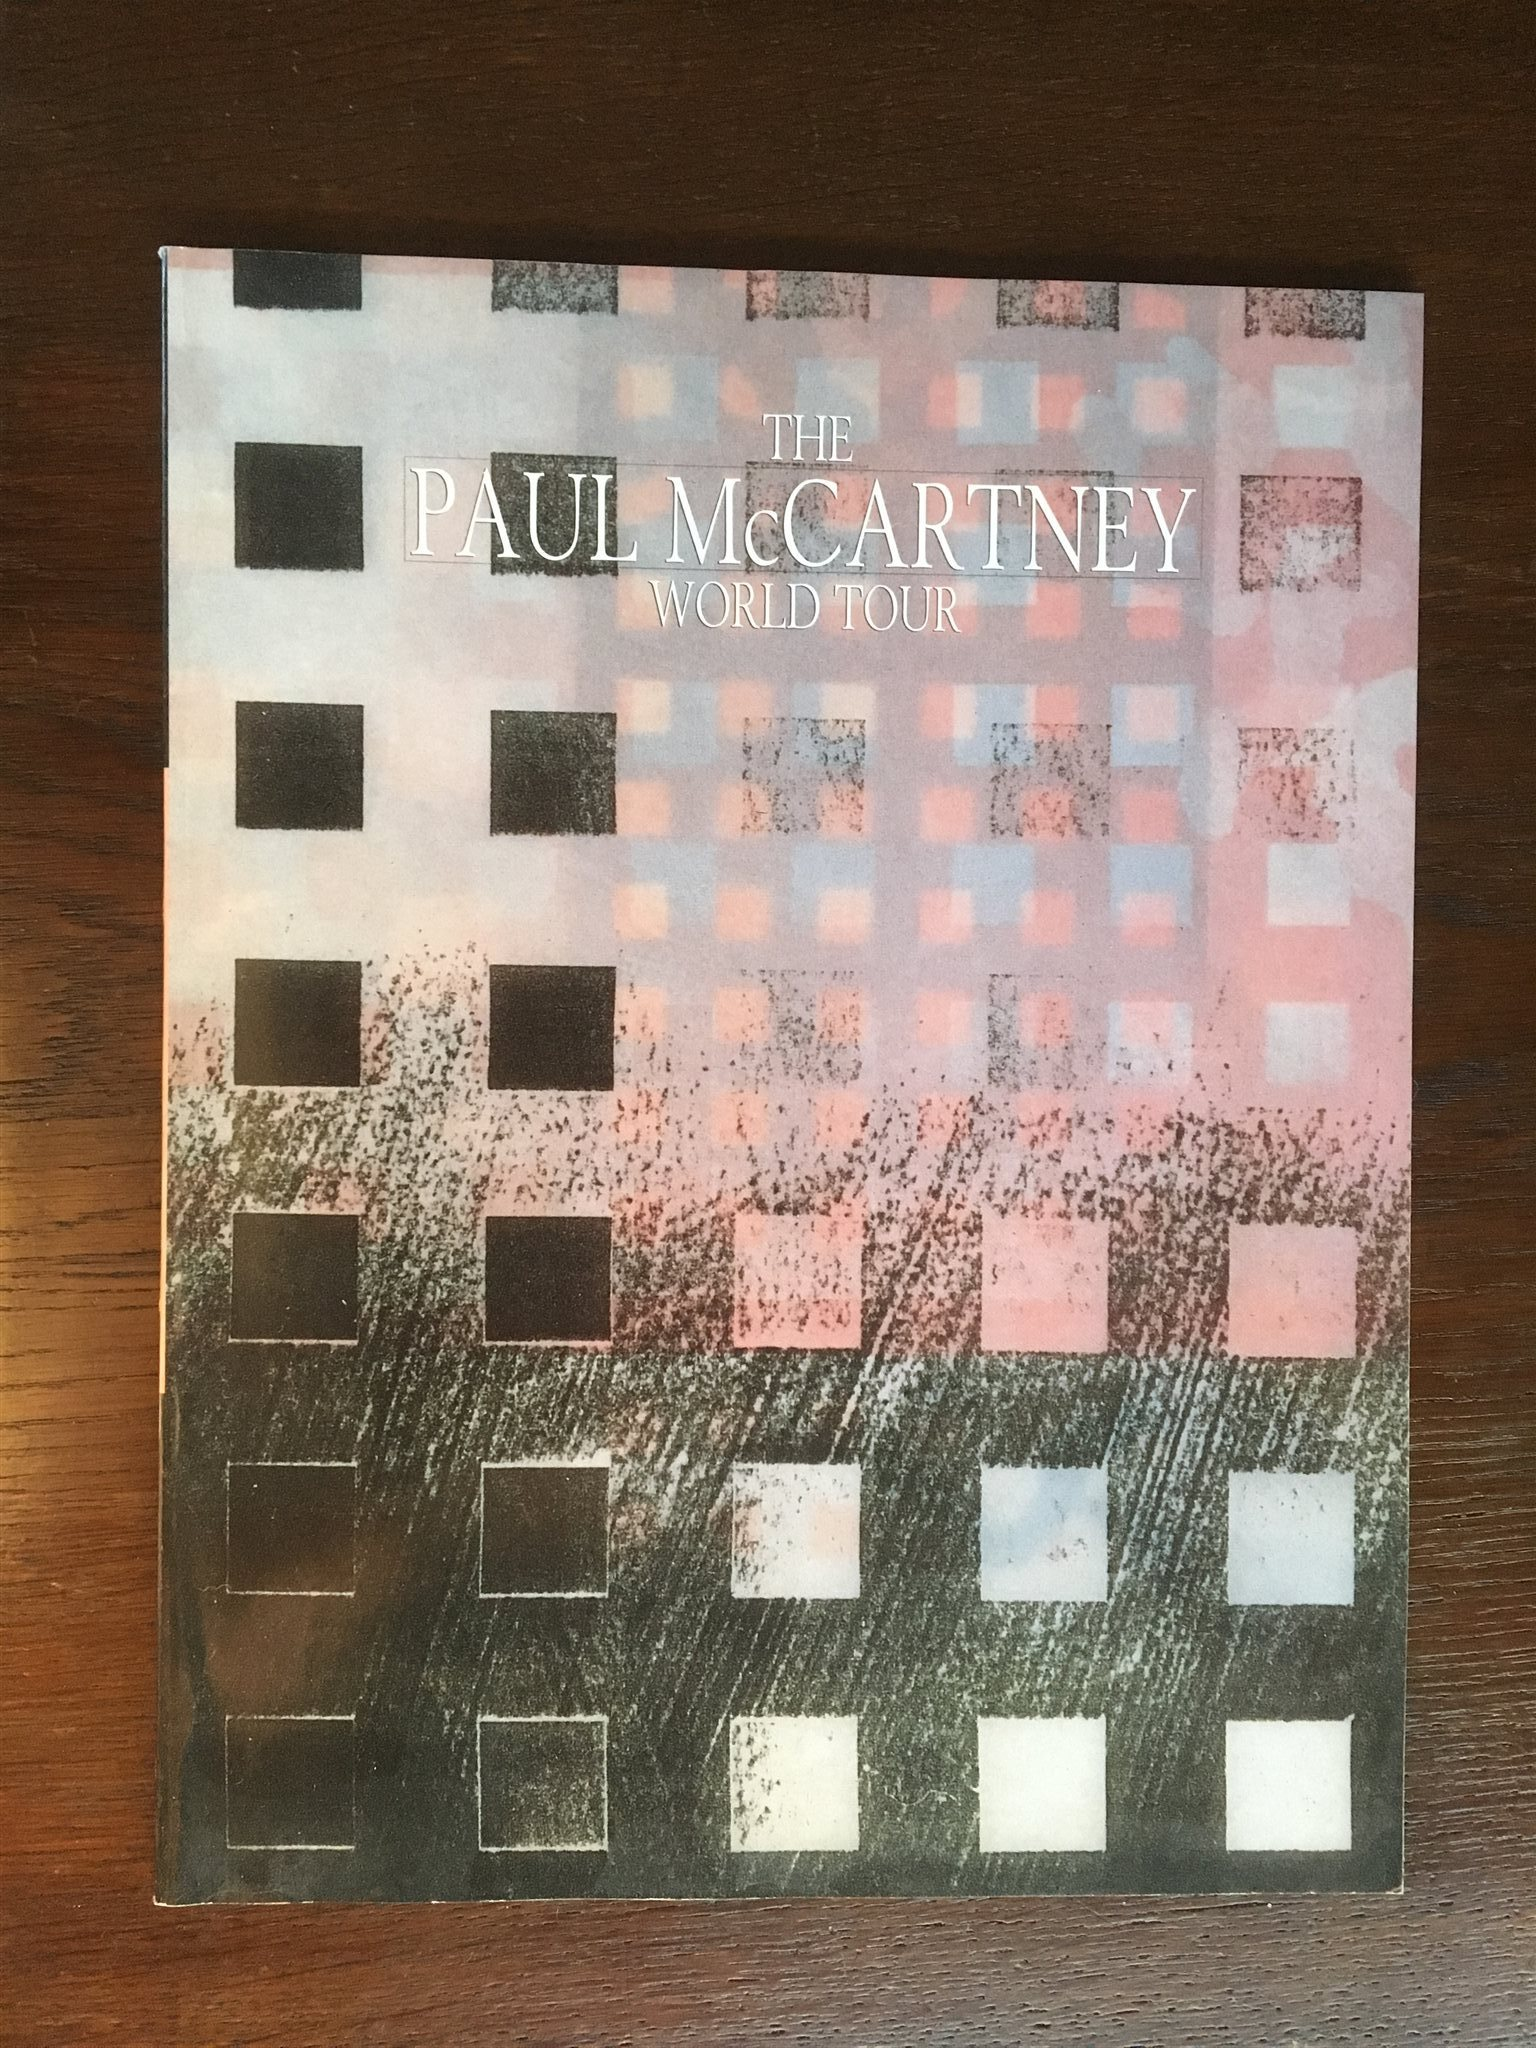 Paul McCartney The World Tour 1989 Turnéprogram